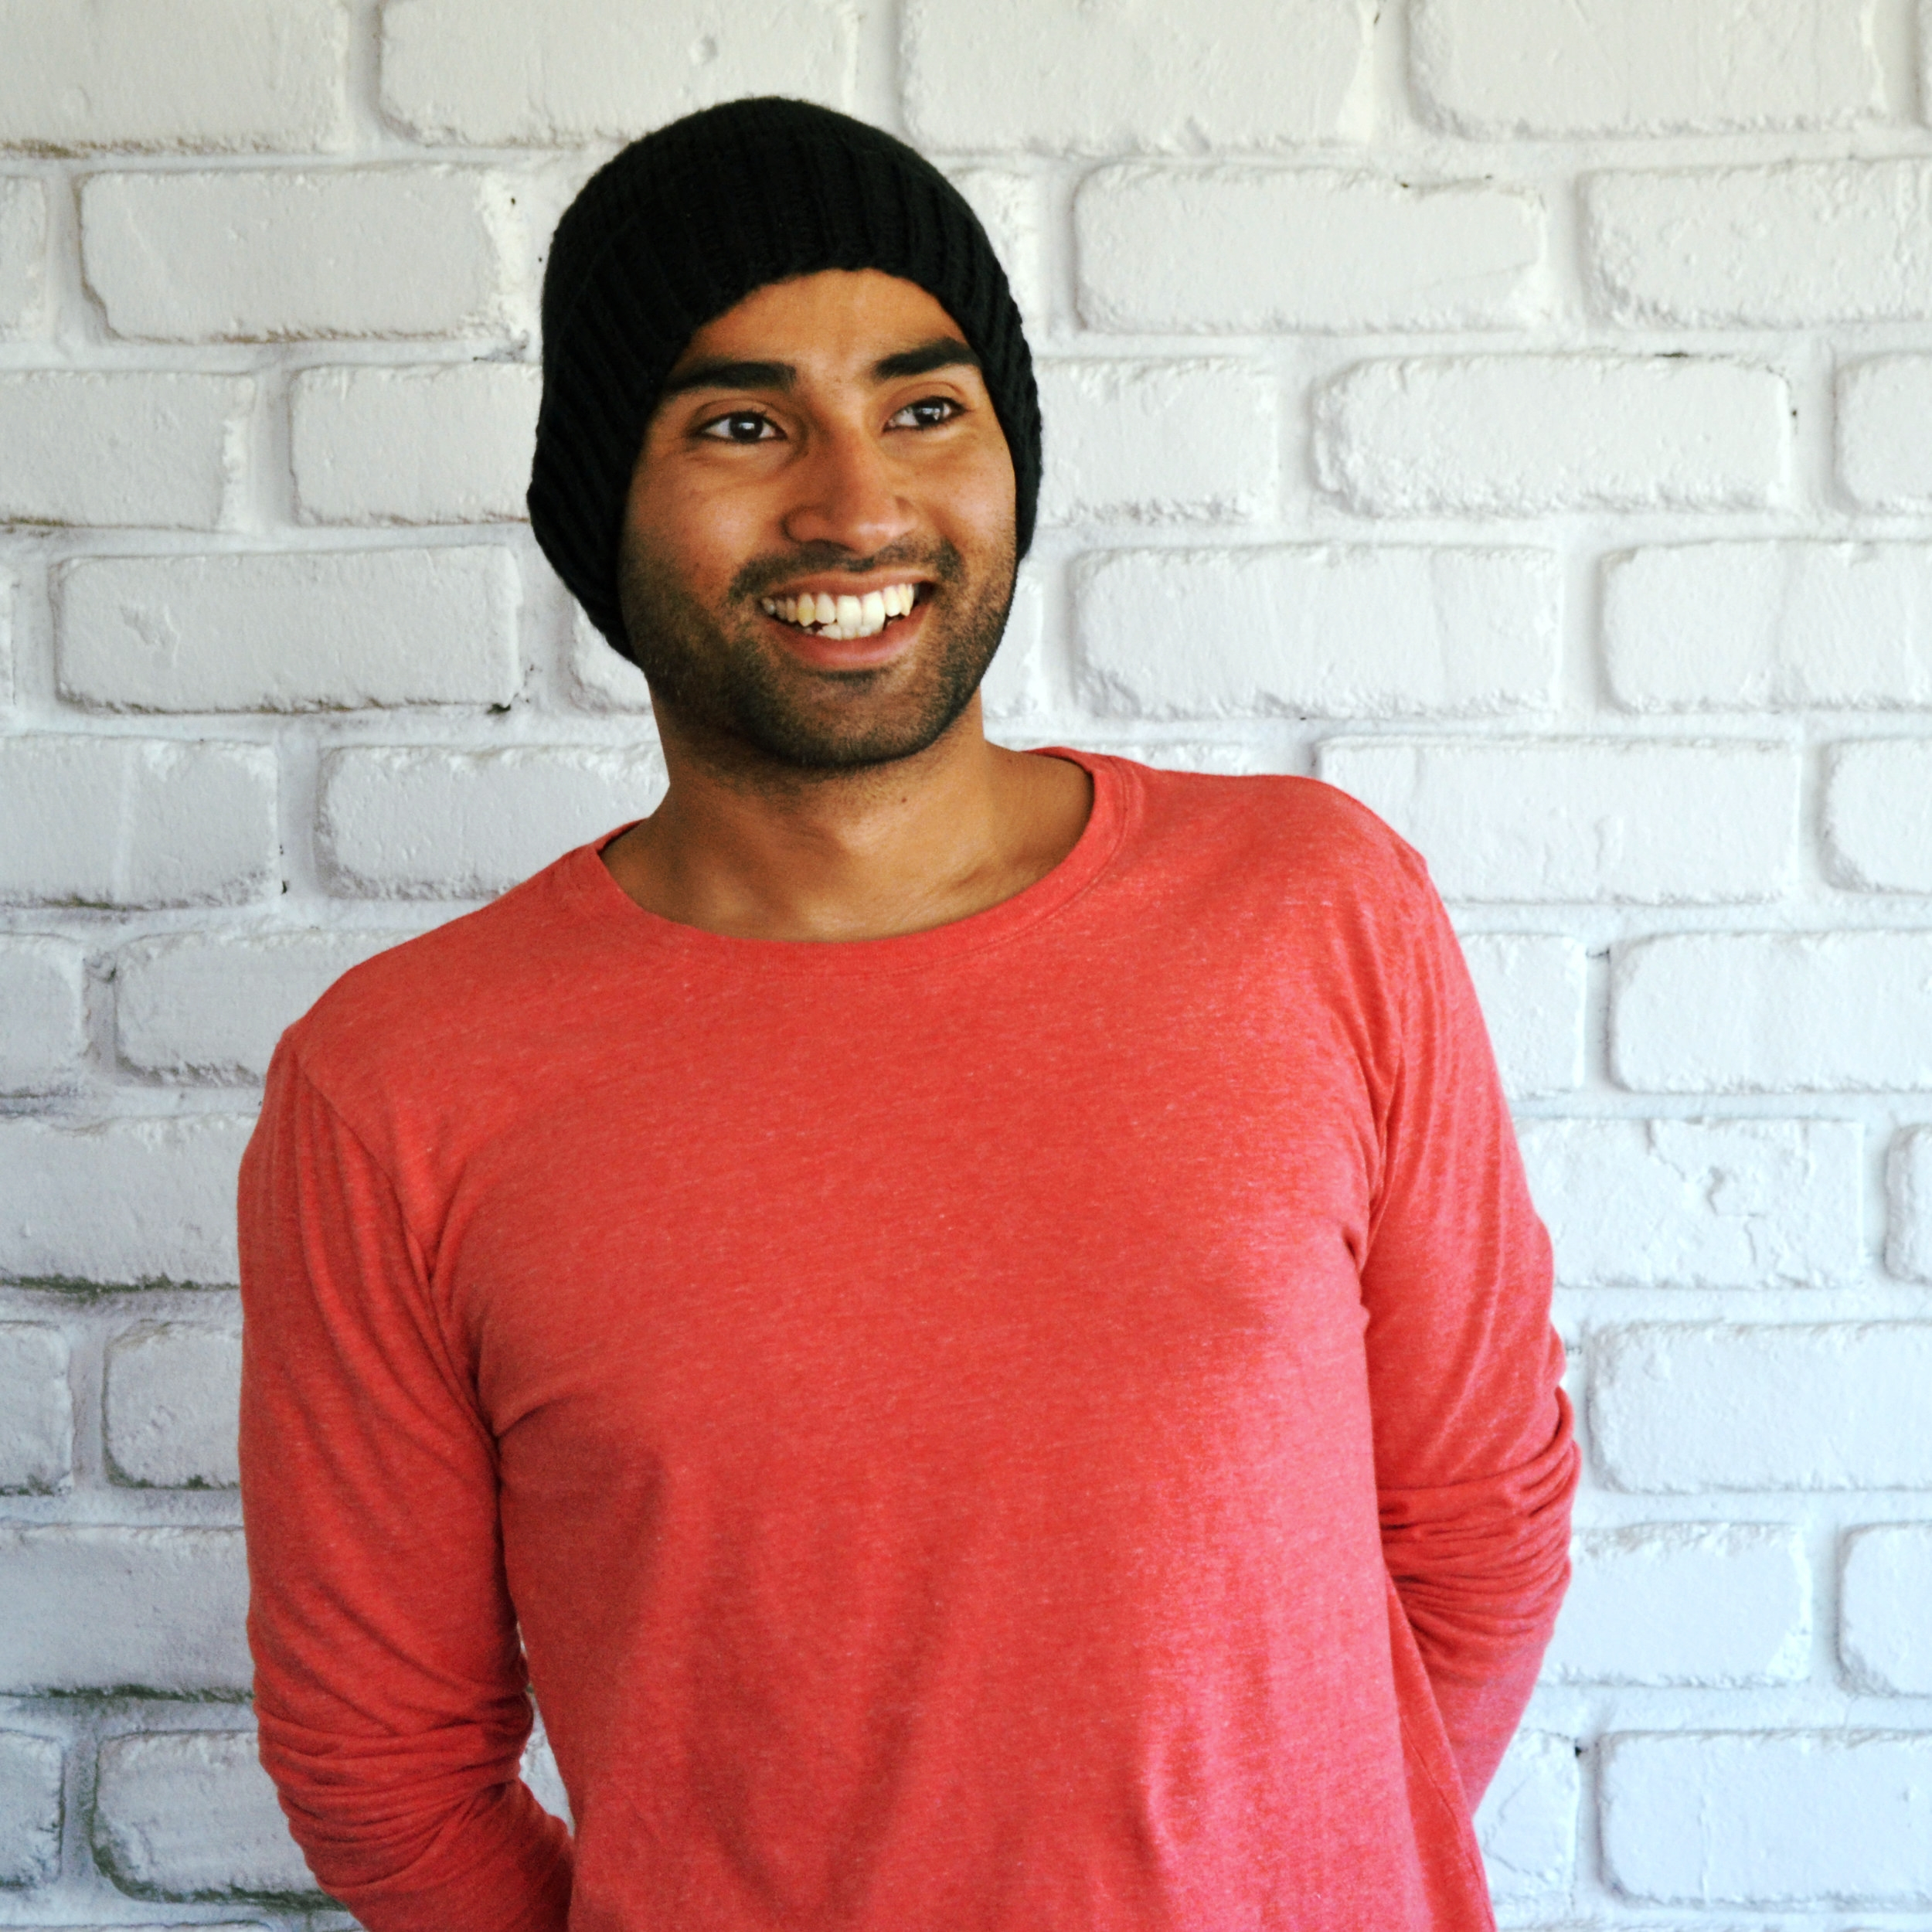 Sumeet is an artist and designer. As a teenager, he was apprenticed to a renowned sculptor, a period that changed his life.  He has experience designing for art museums, fashion lines, tech products, non fiction books, novels and more.  Sumeet was inspired by the vision for Moon+Leaf as it questioned his role in modern society.